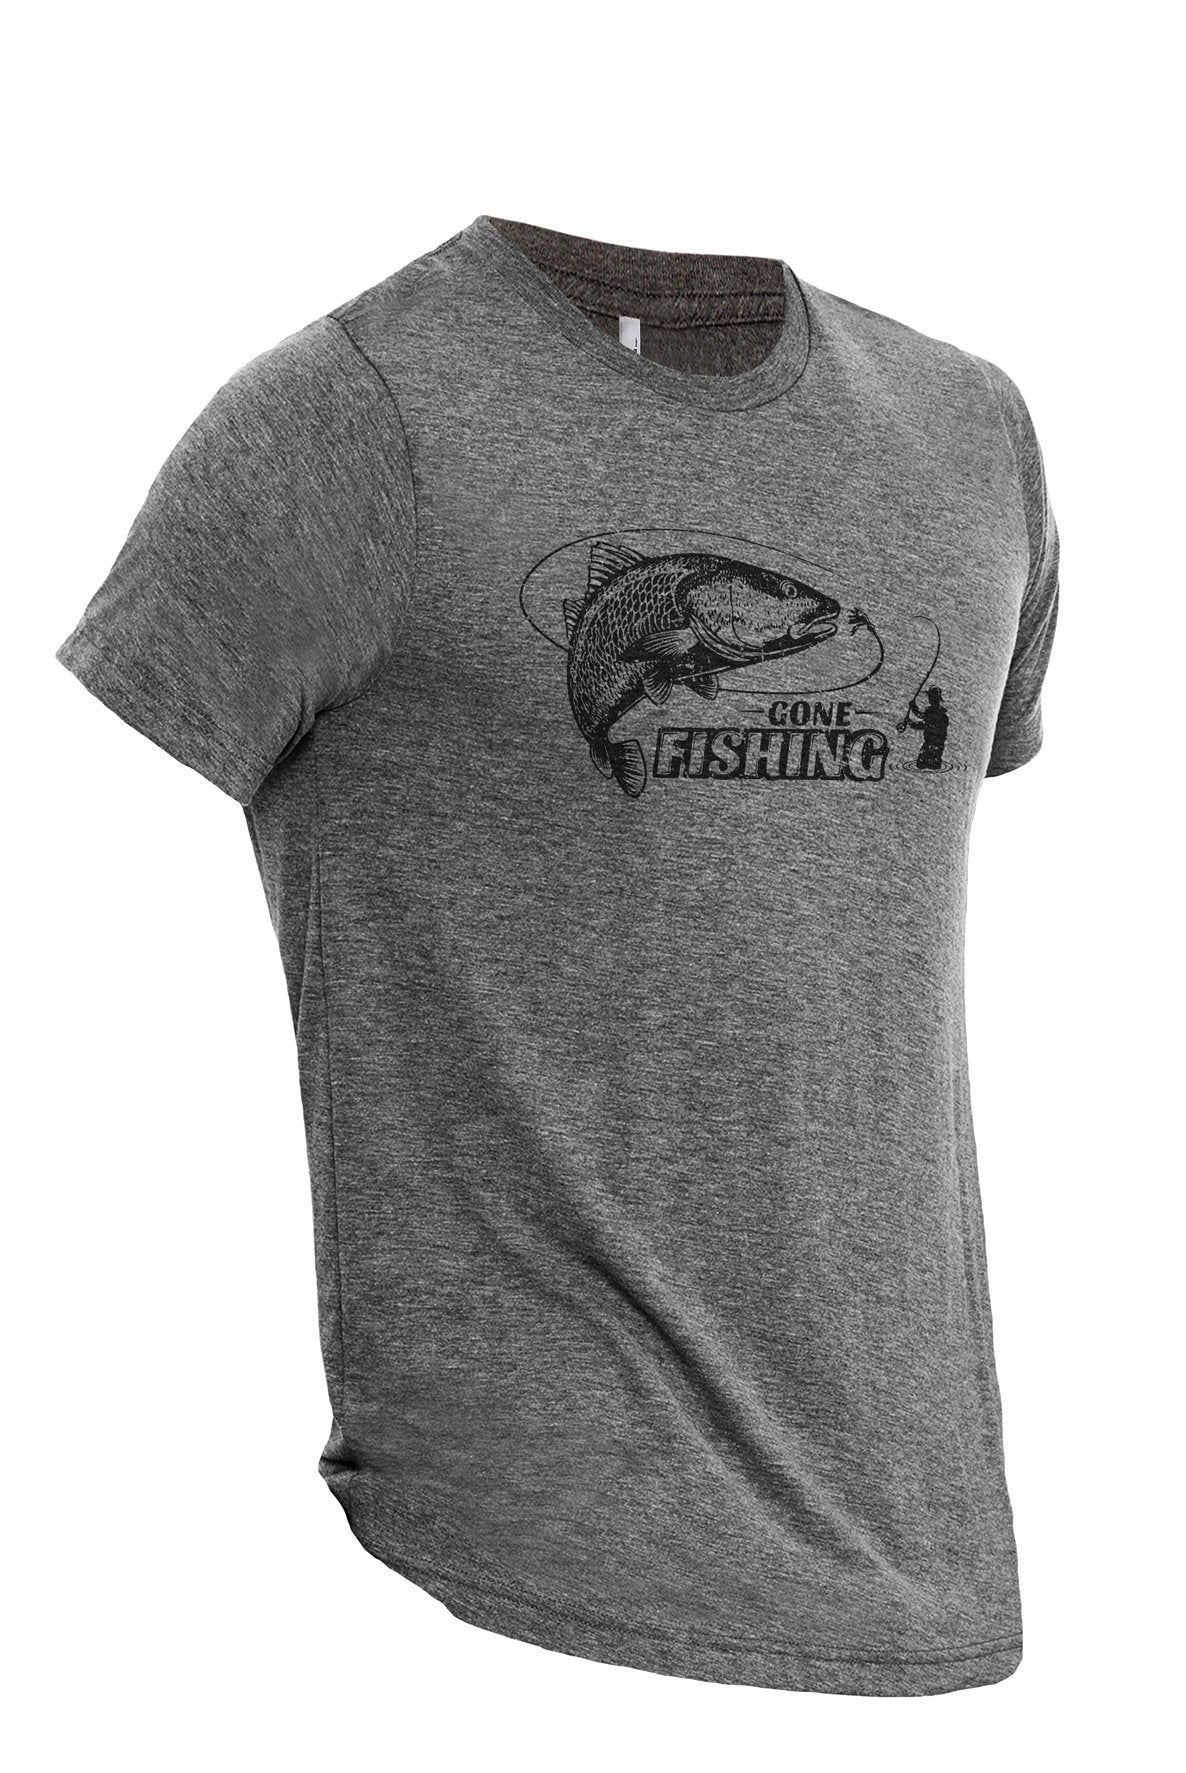 Gone Fishing Heather Grey Printed Graphic Men's Crew T-Shirt Tee